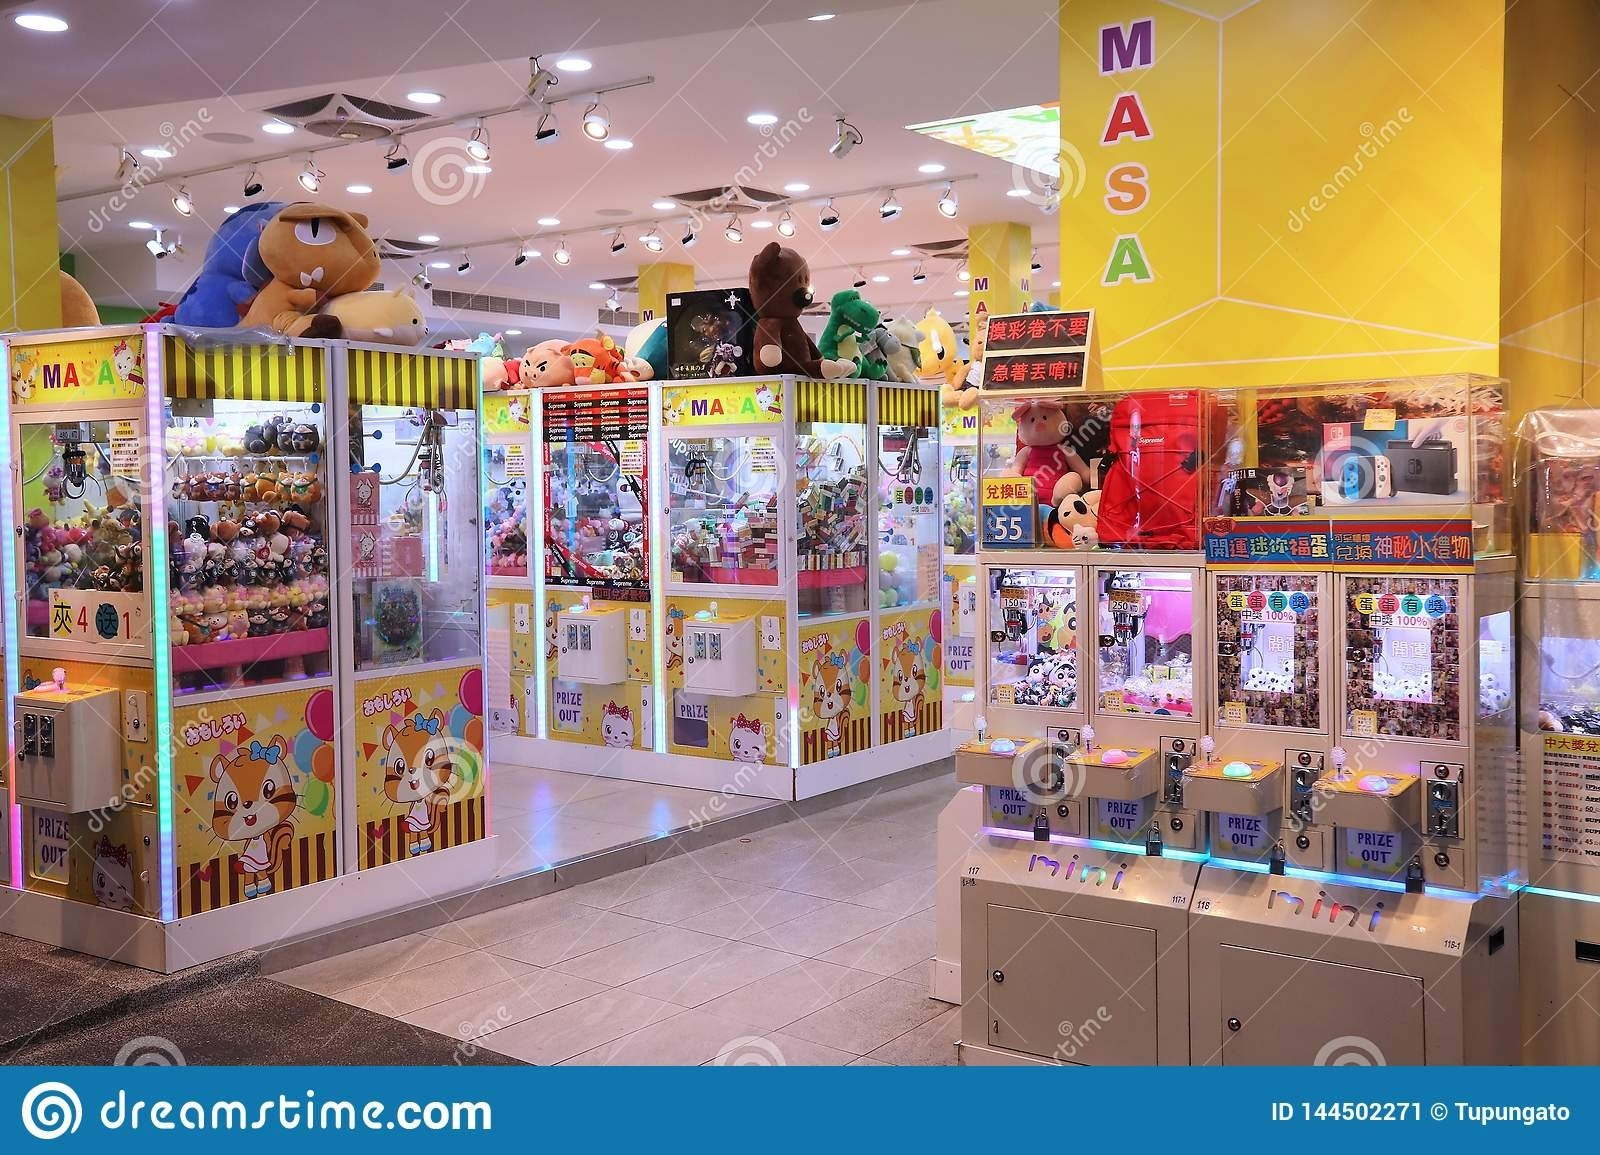 Claw Machines In Taiwan Editorial Photo. Image Of Asian-Jewish Holidays In Decembermachine